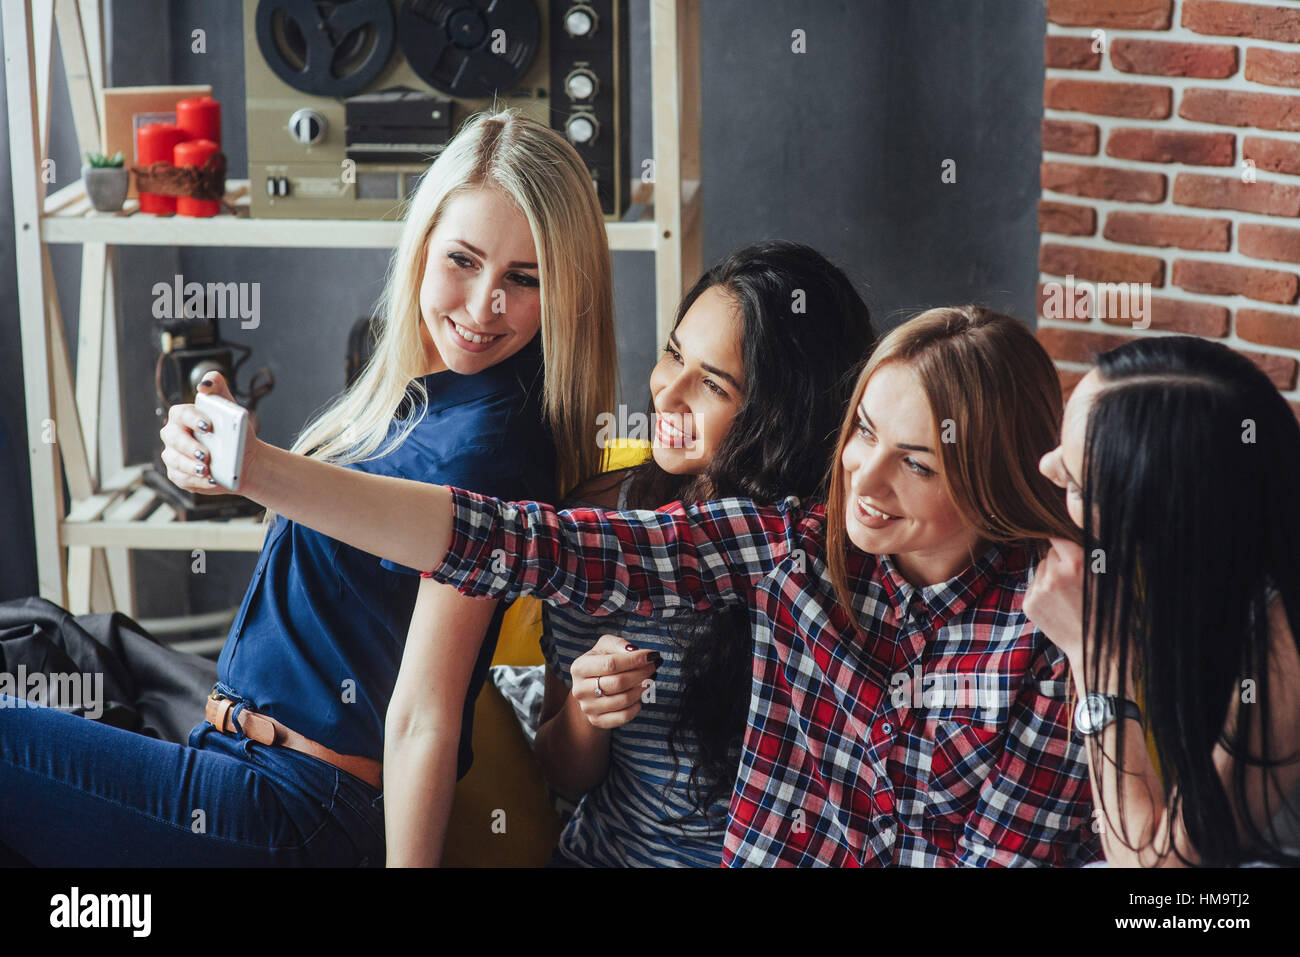 Four beautiful young woman doing selfie in a cafe, best friends girls together having fun, posing emotional lifestyle - Stock Image